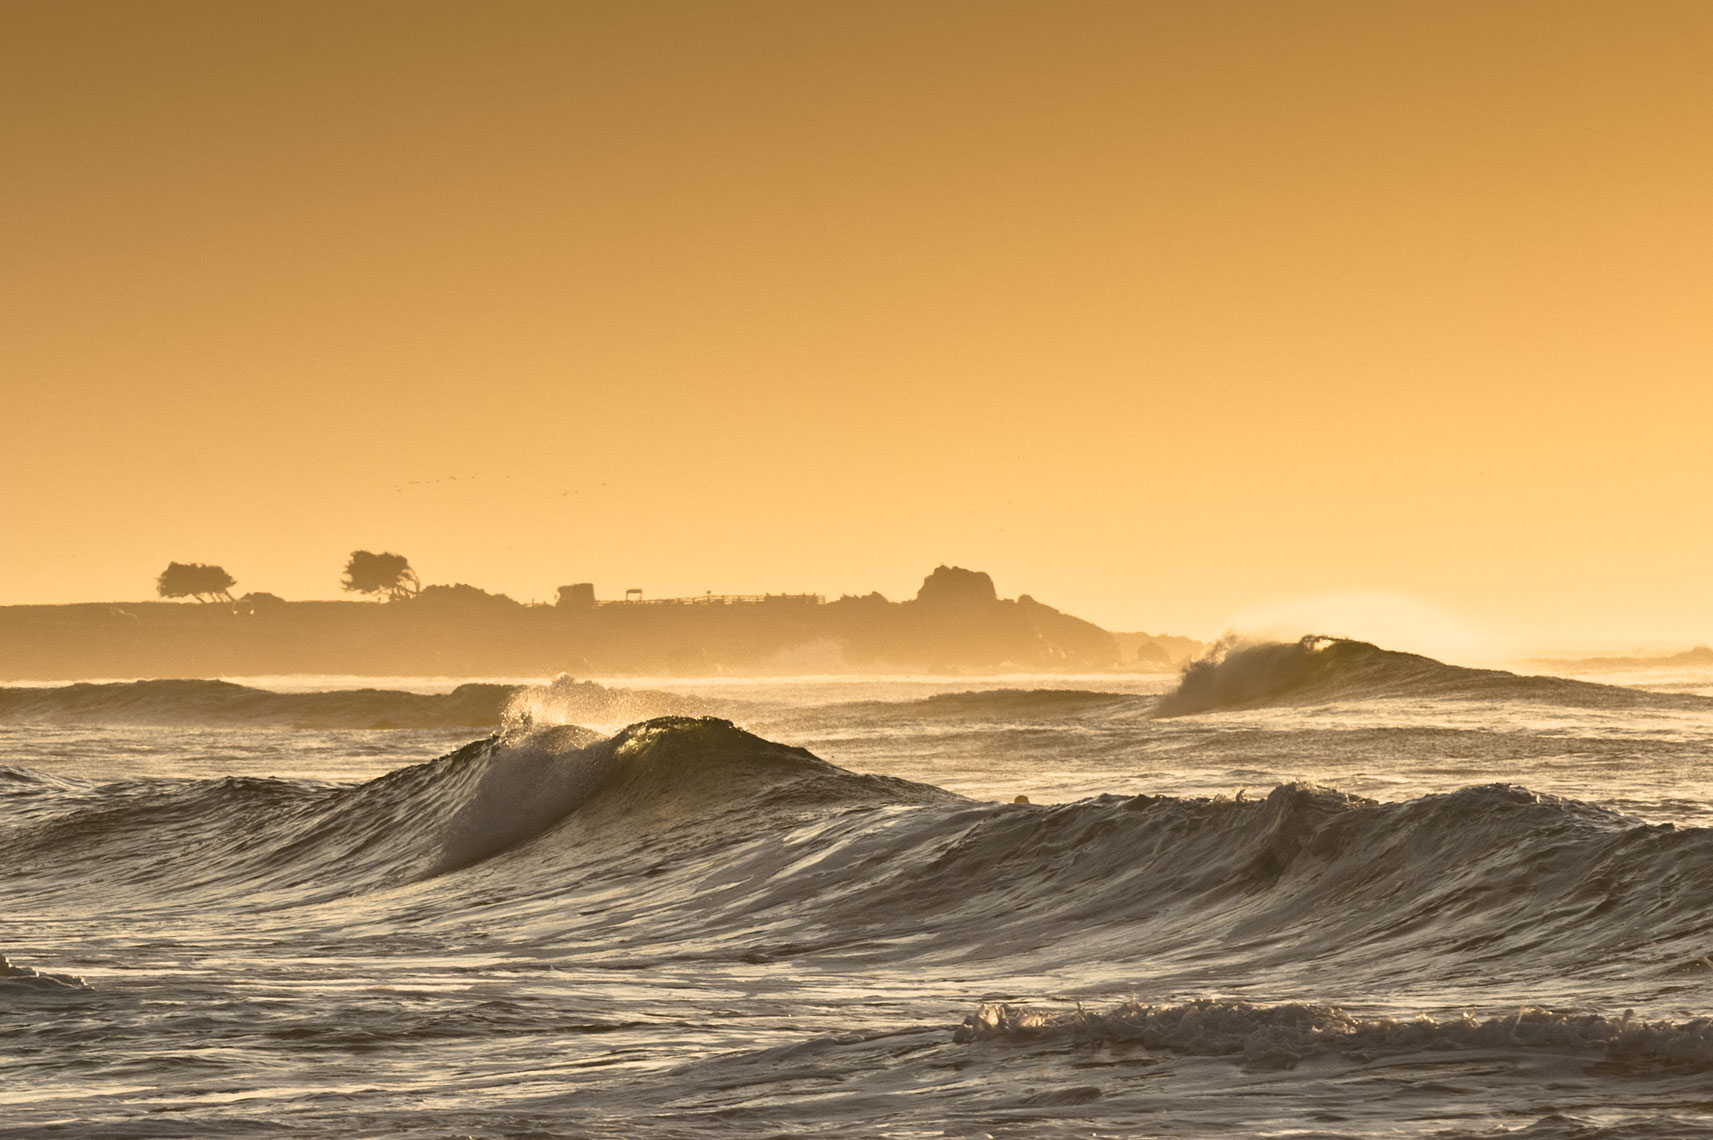 Spanish Bay, by California landscape photographer Mike Morgan.